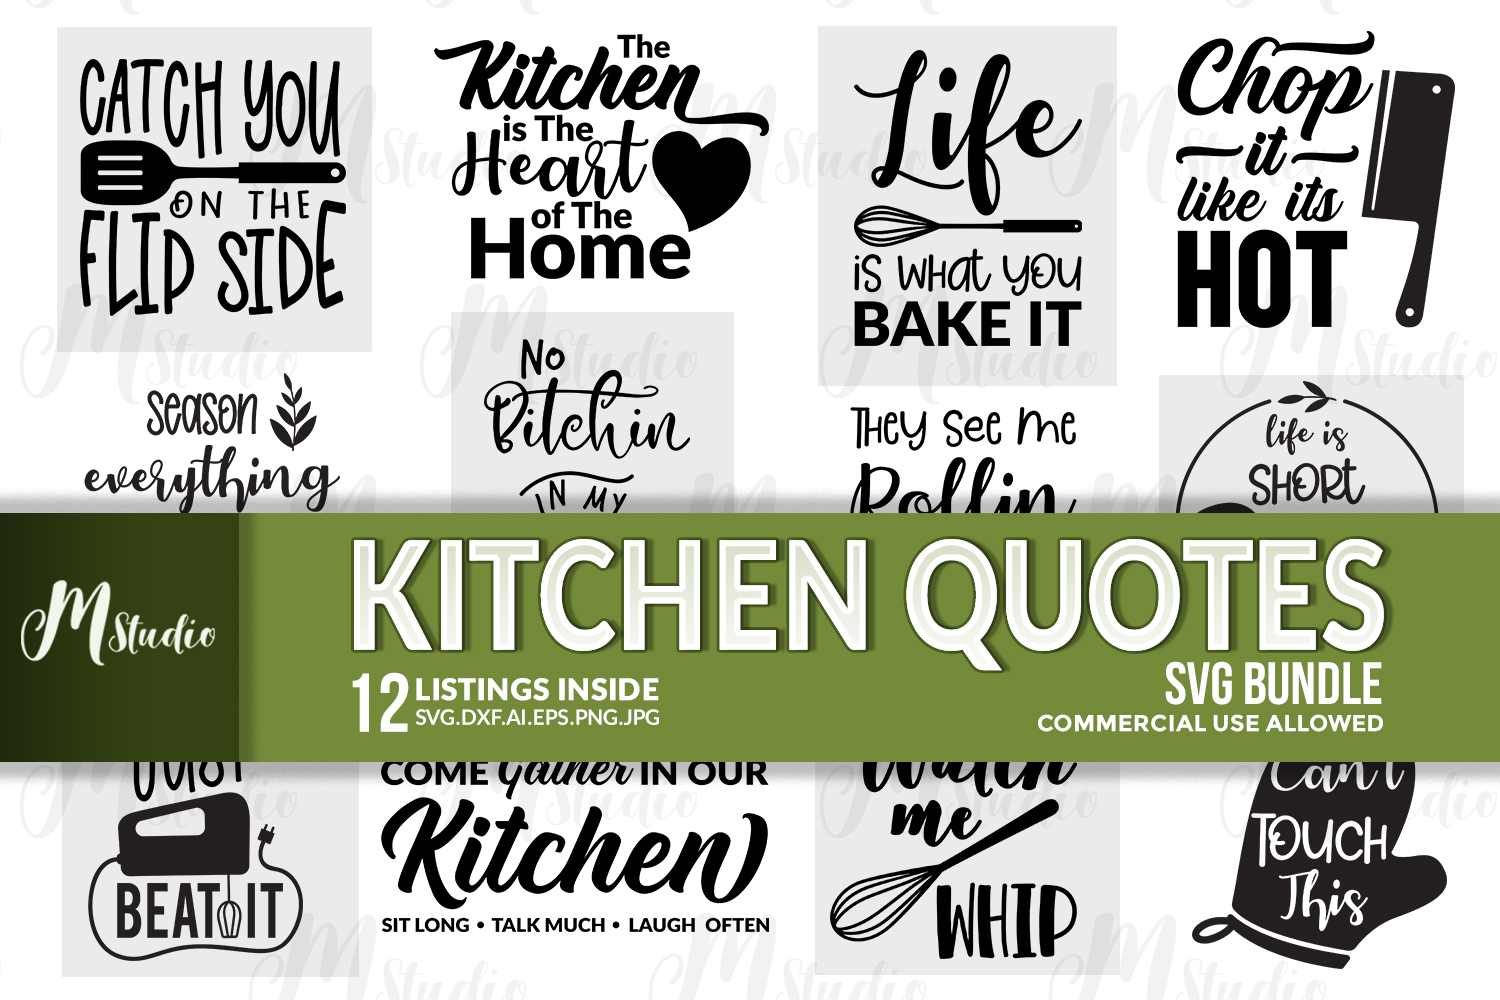 Kitchen Quotes svg bundle example image 1